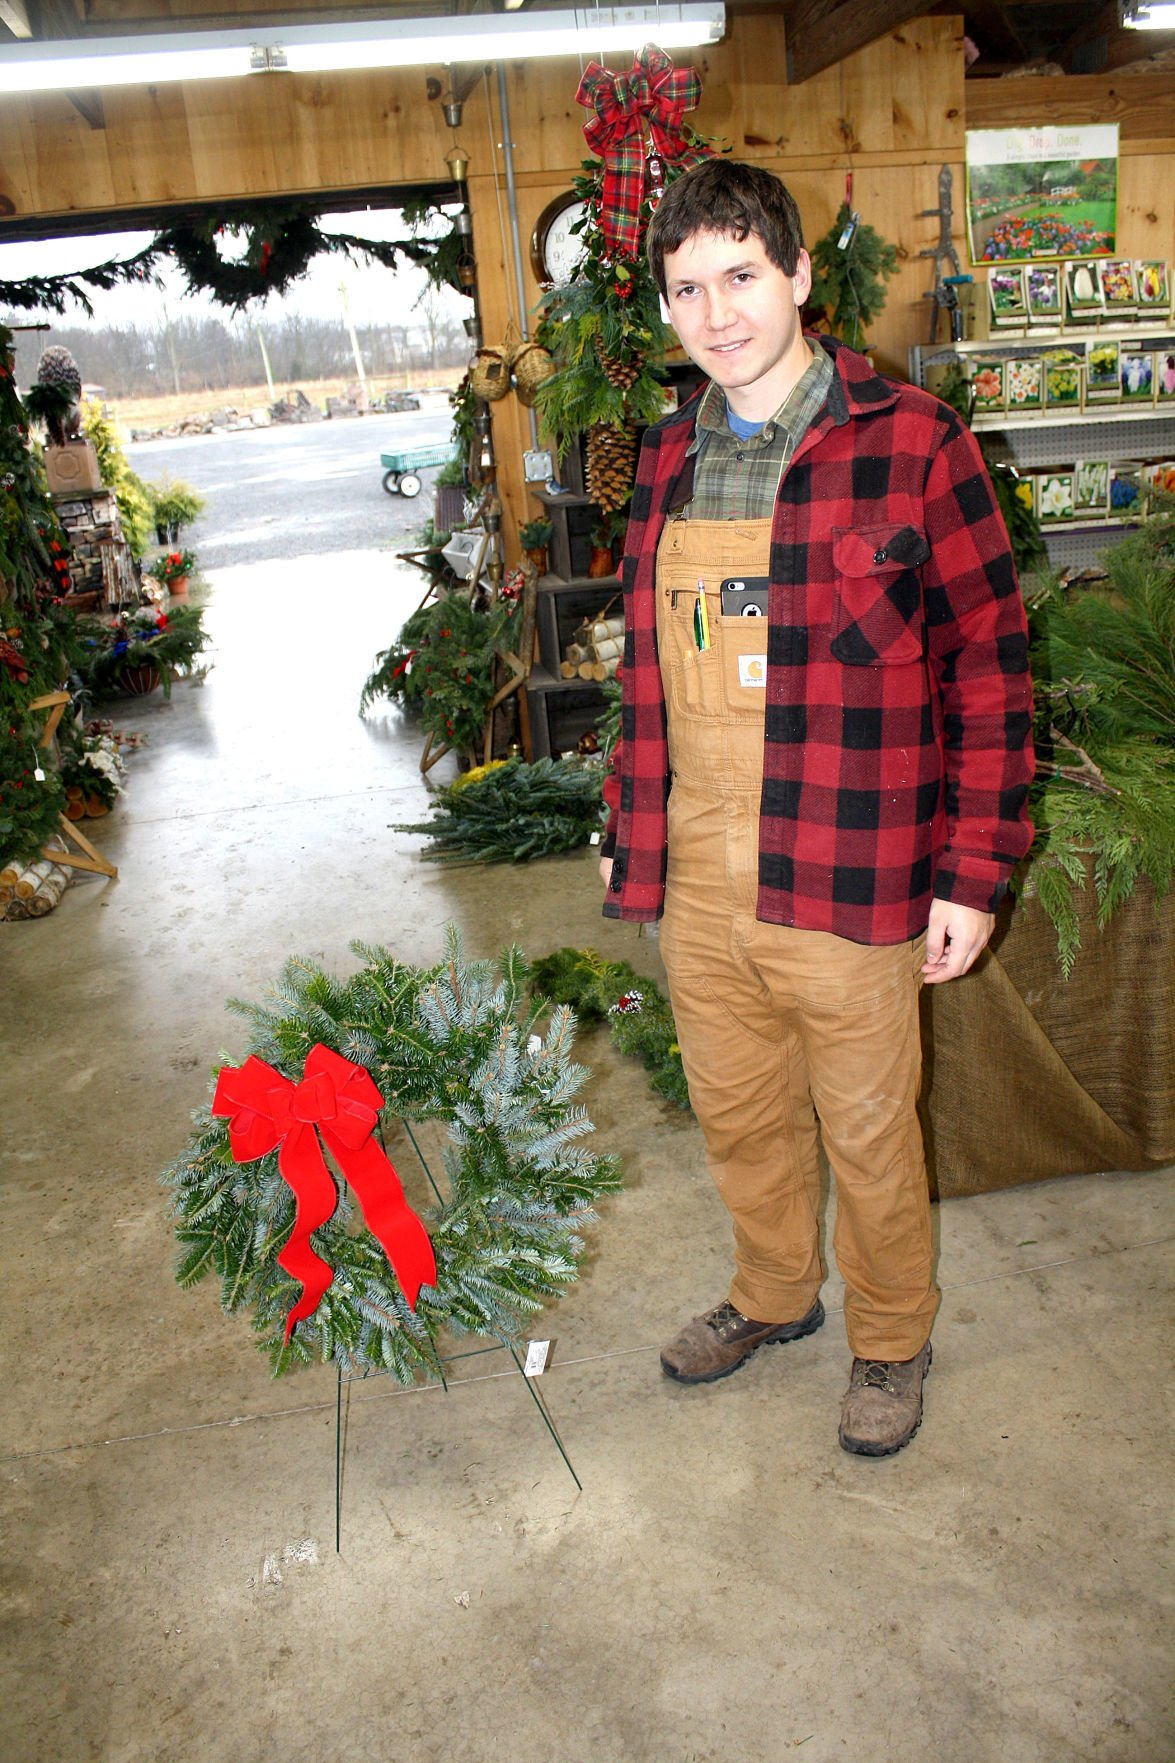 Wreath maker began young